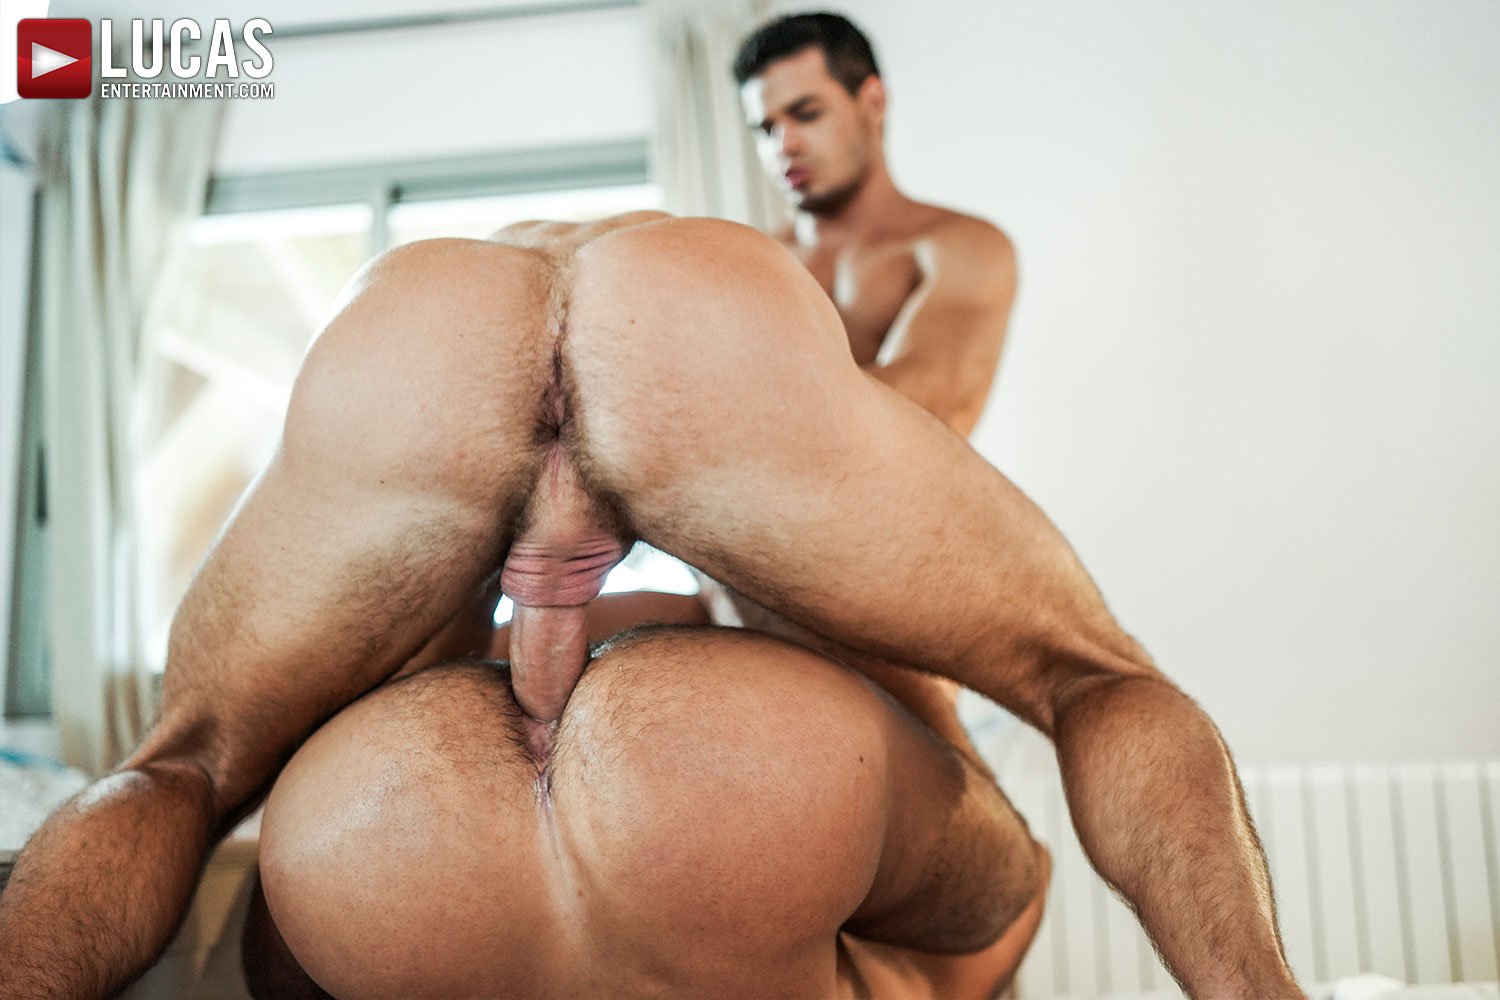 videos porno gay gratis tios buenorros